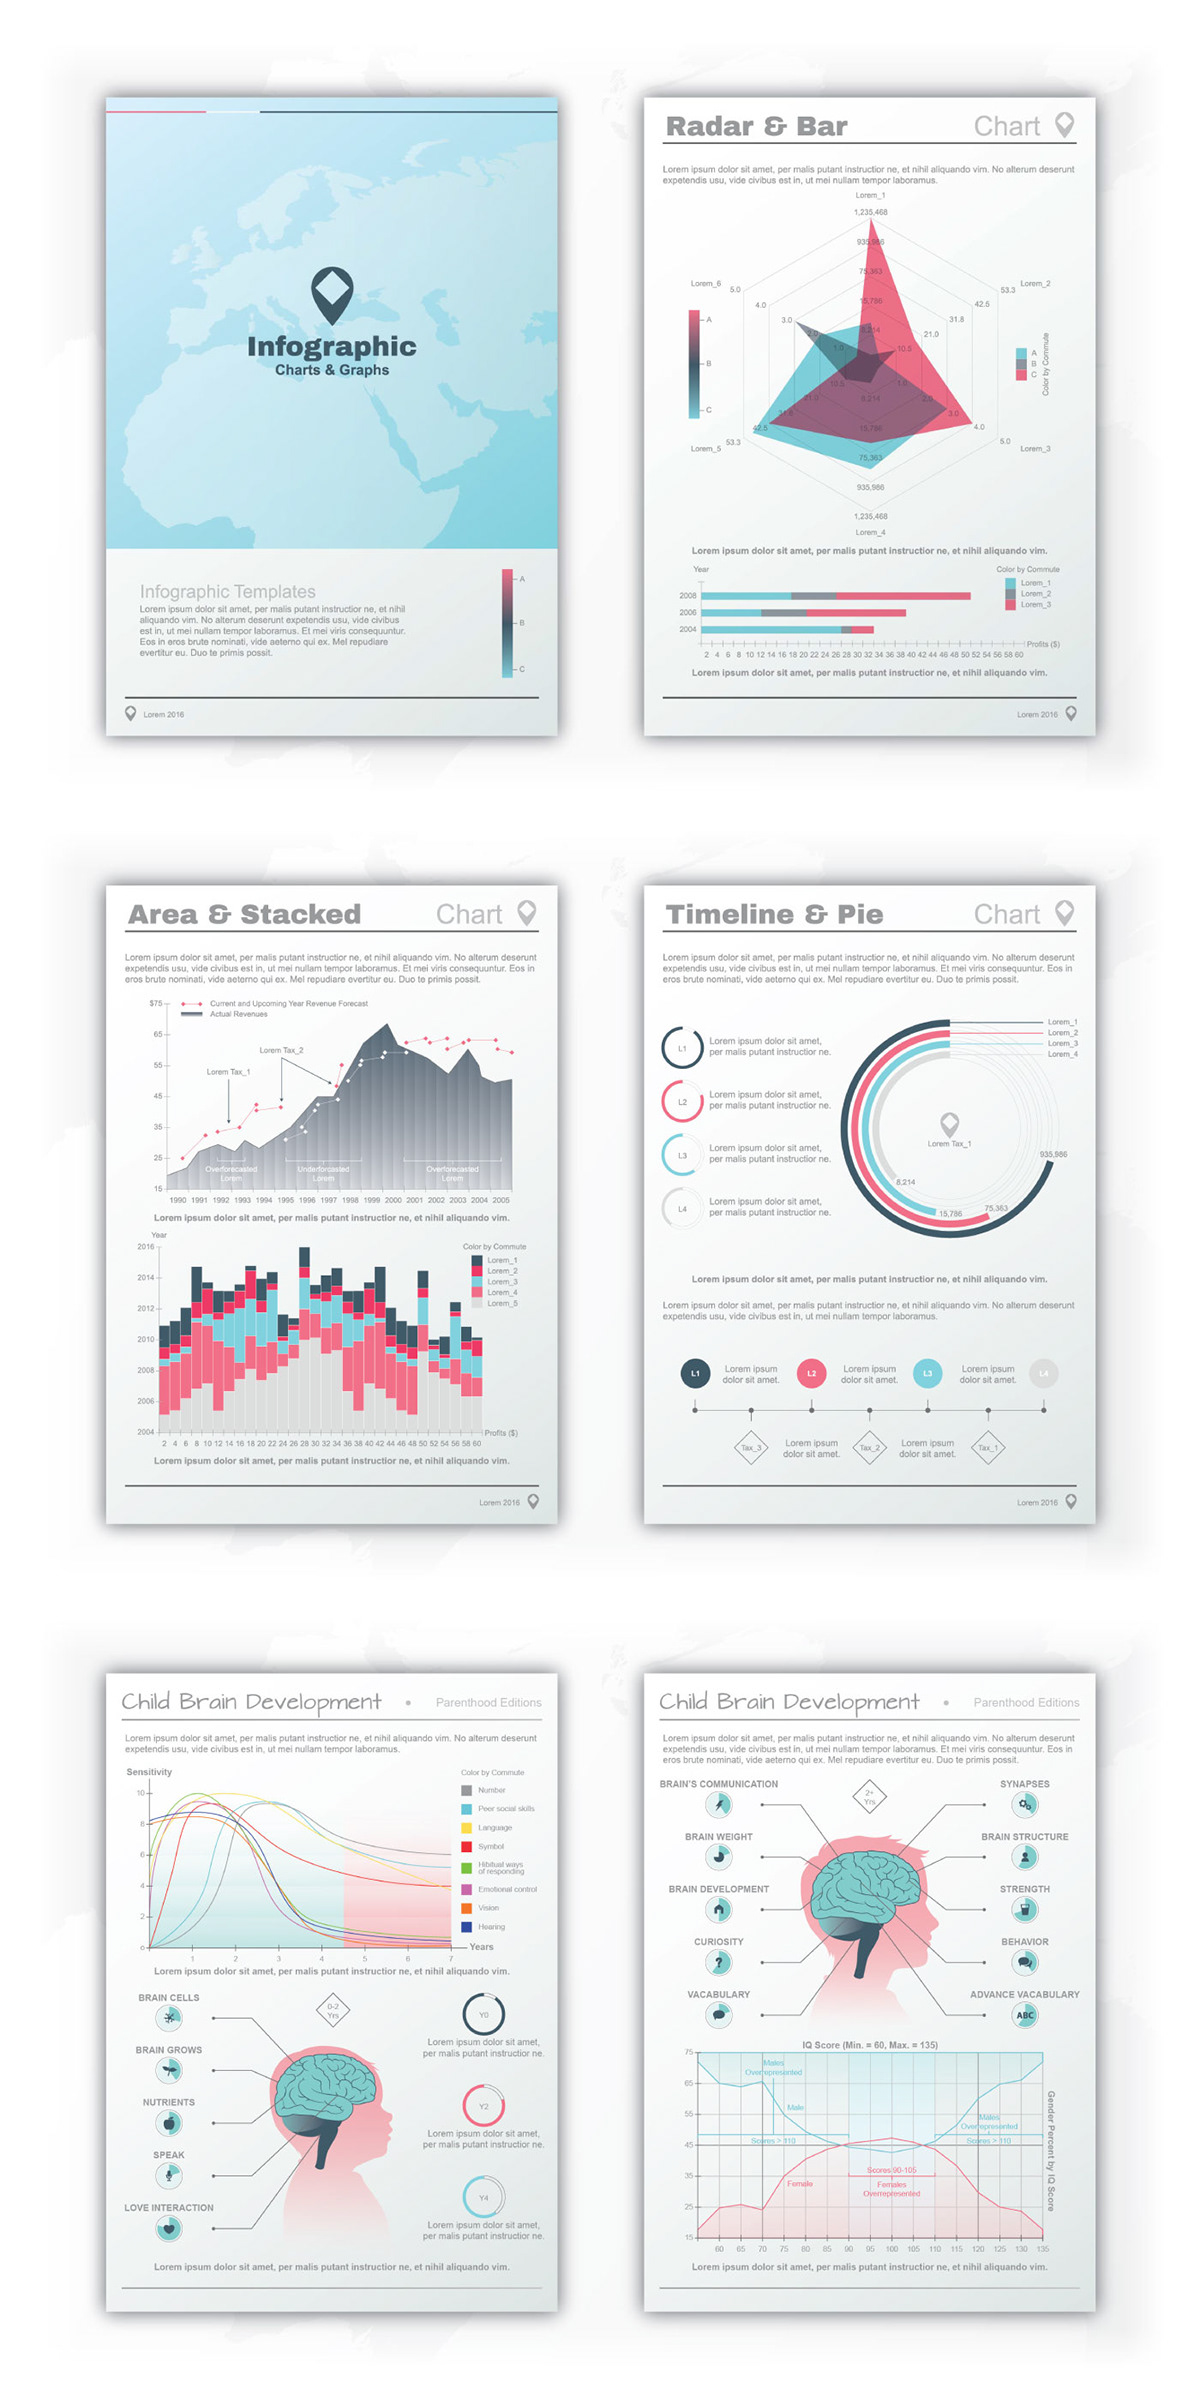 Infographic (Charts & Graphs) on Pantone Canvas Gallery